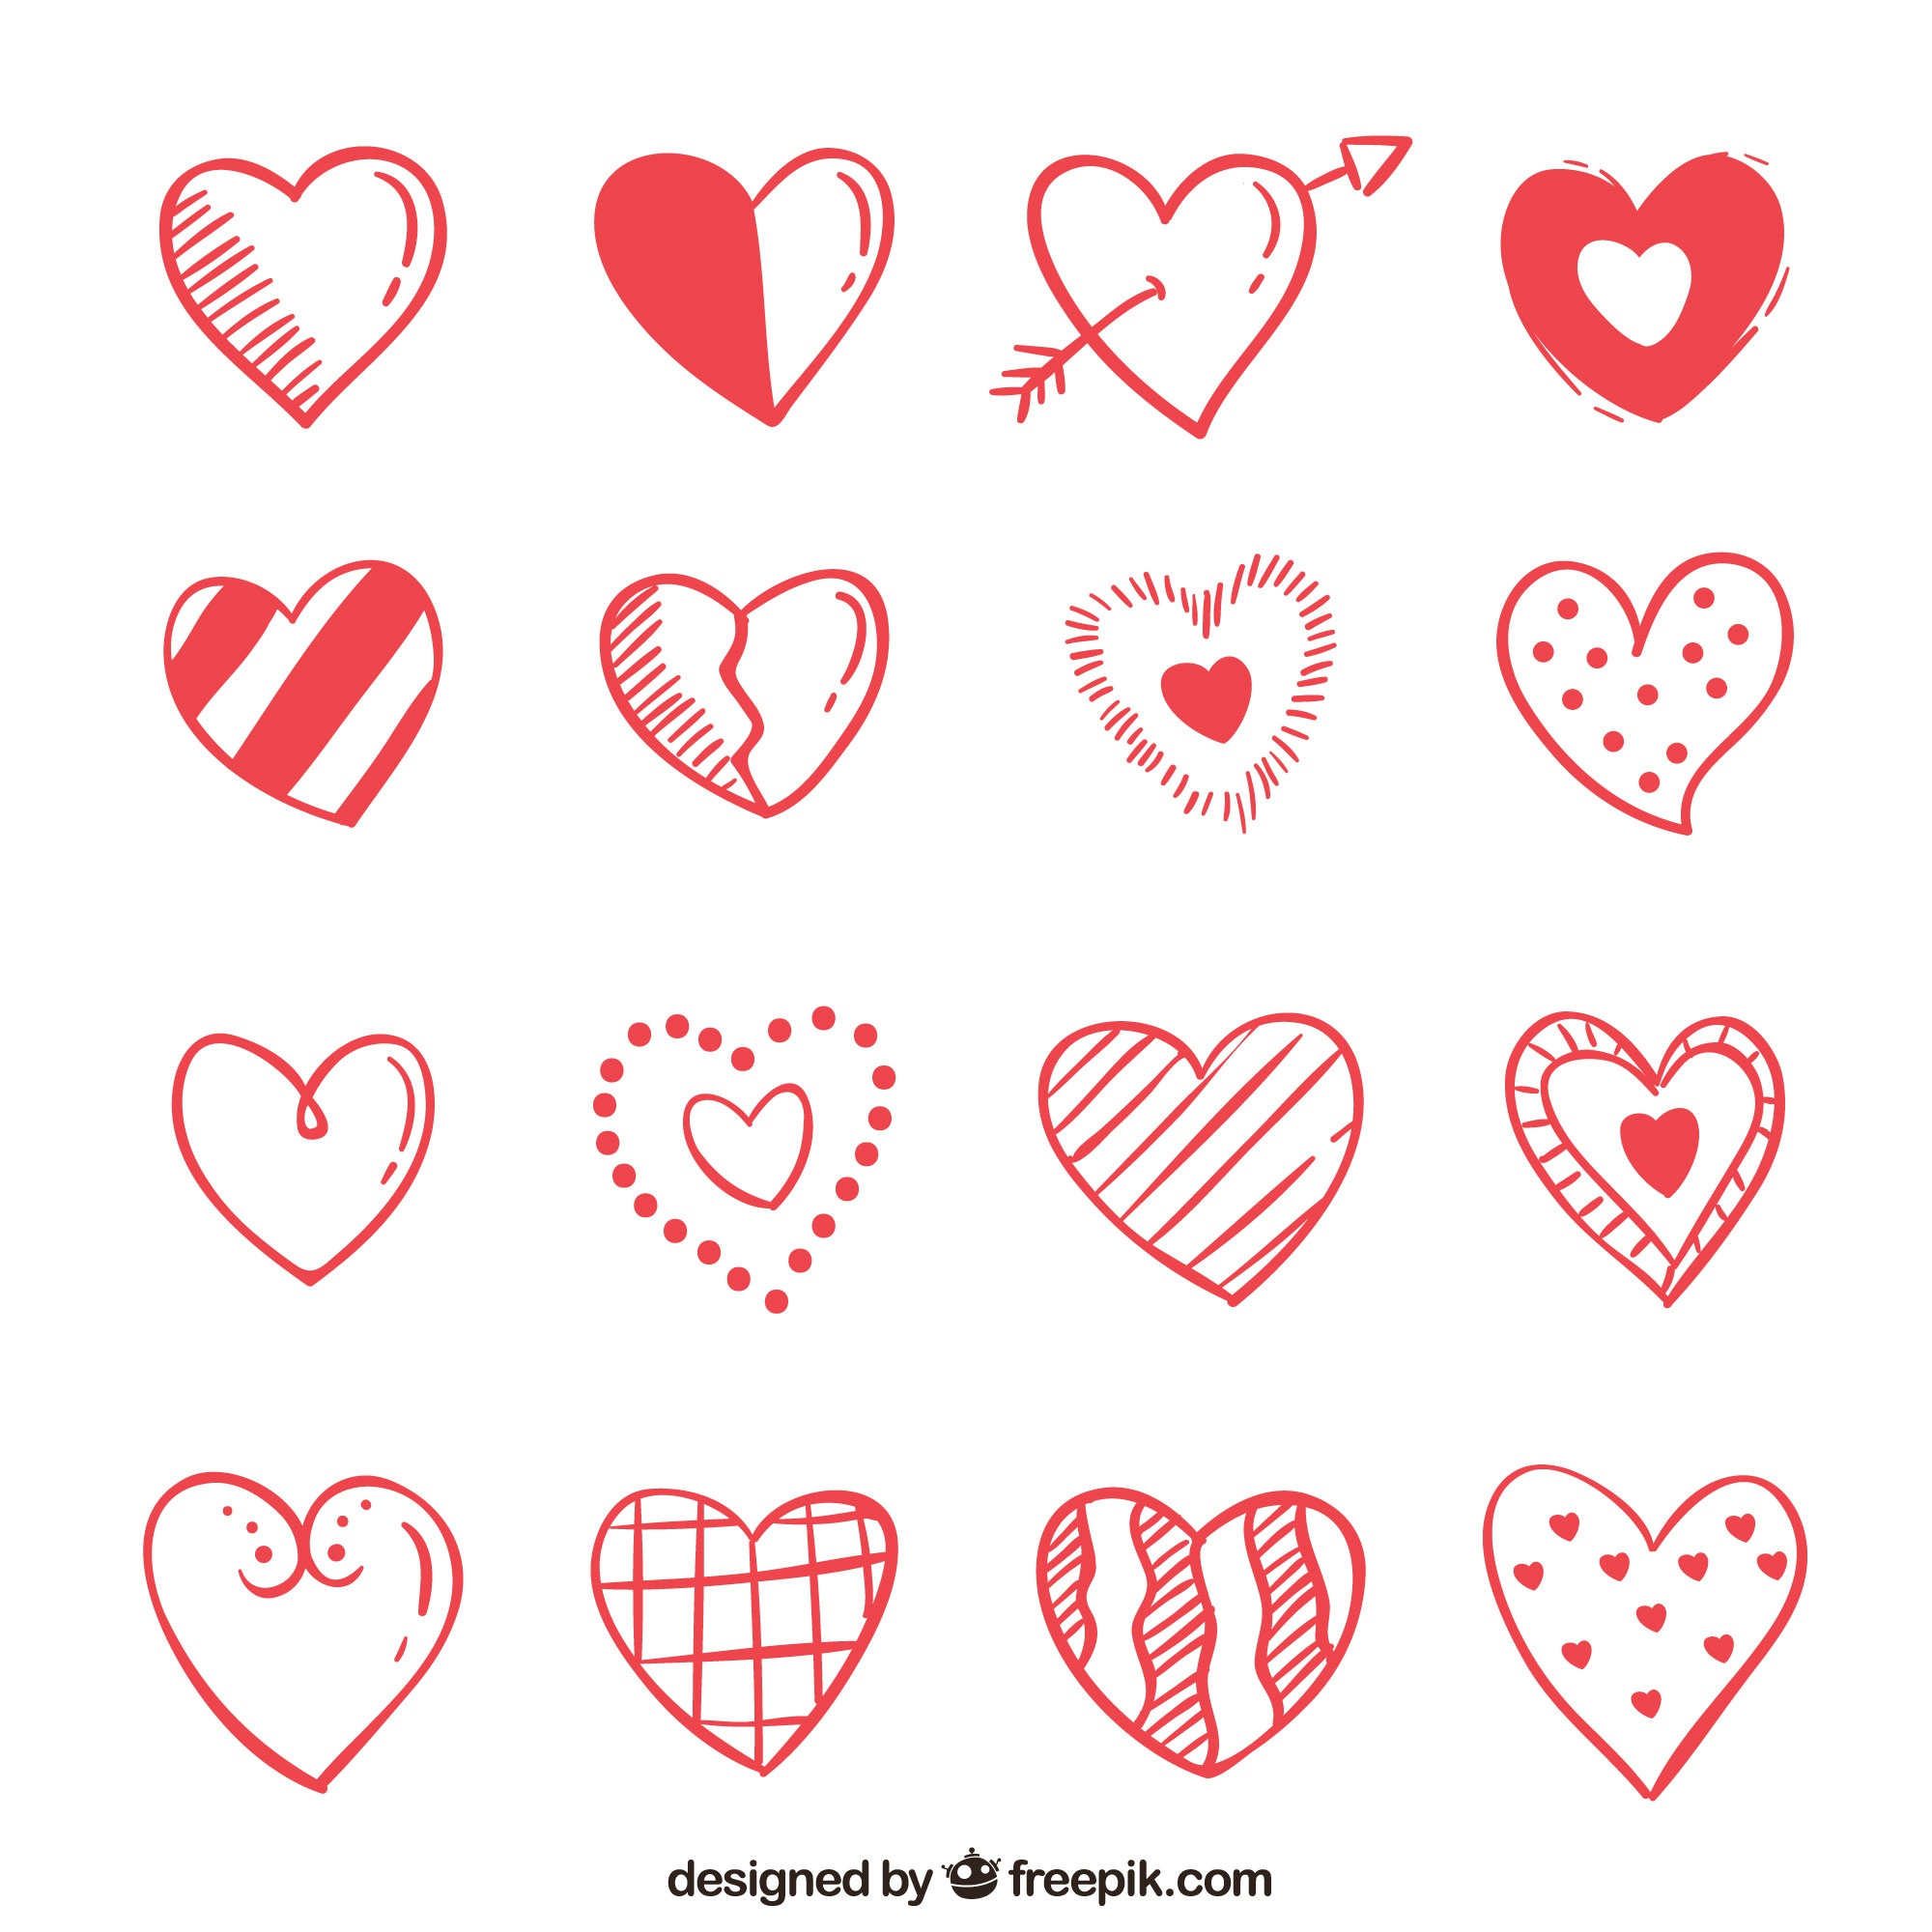 Pack of hand drawn hearts red